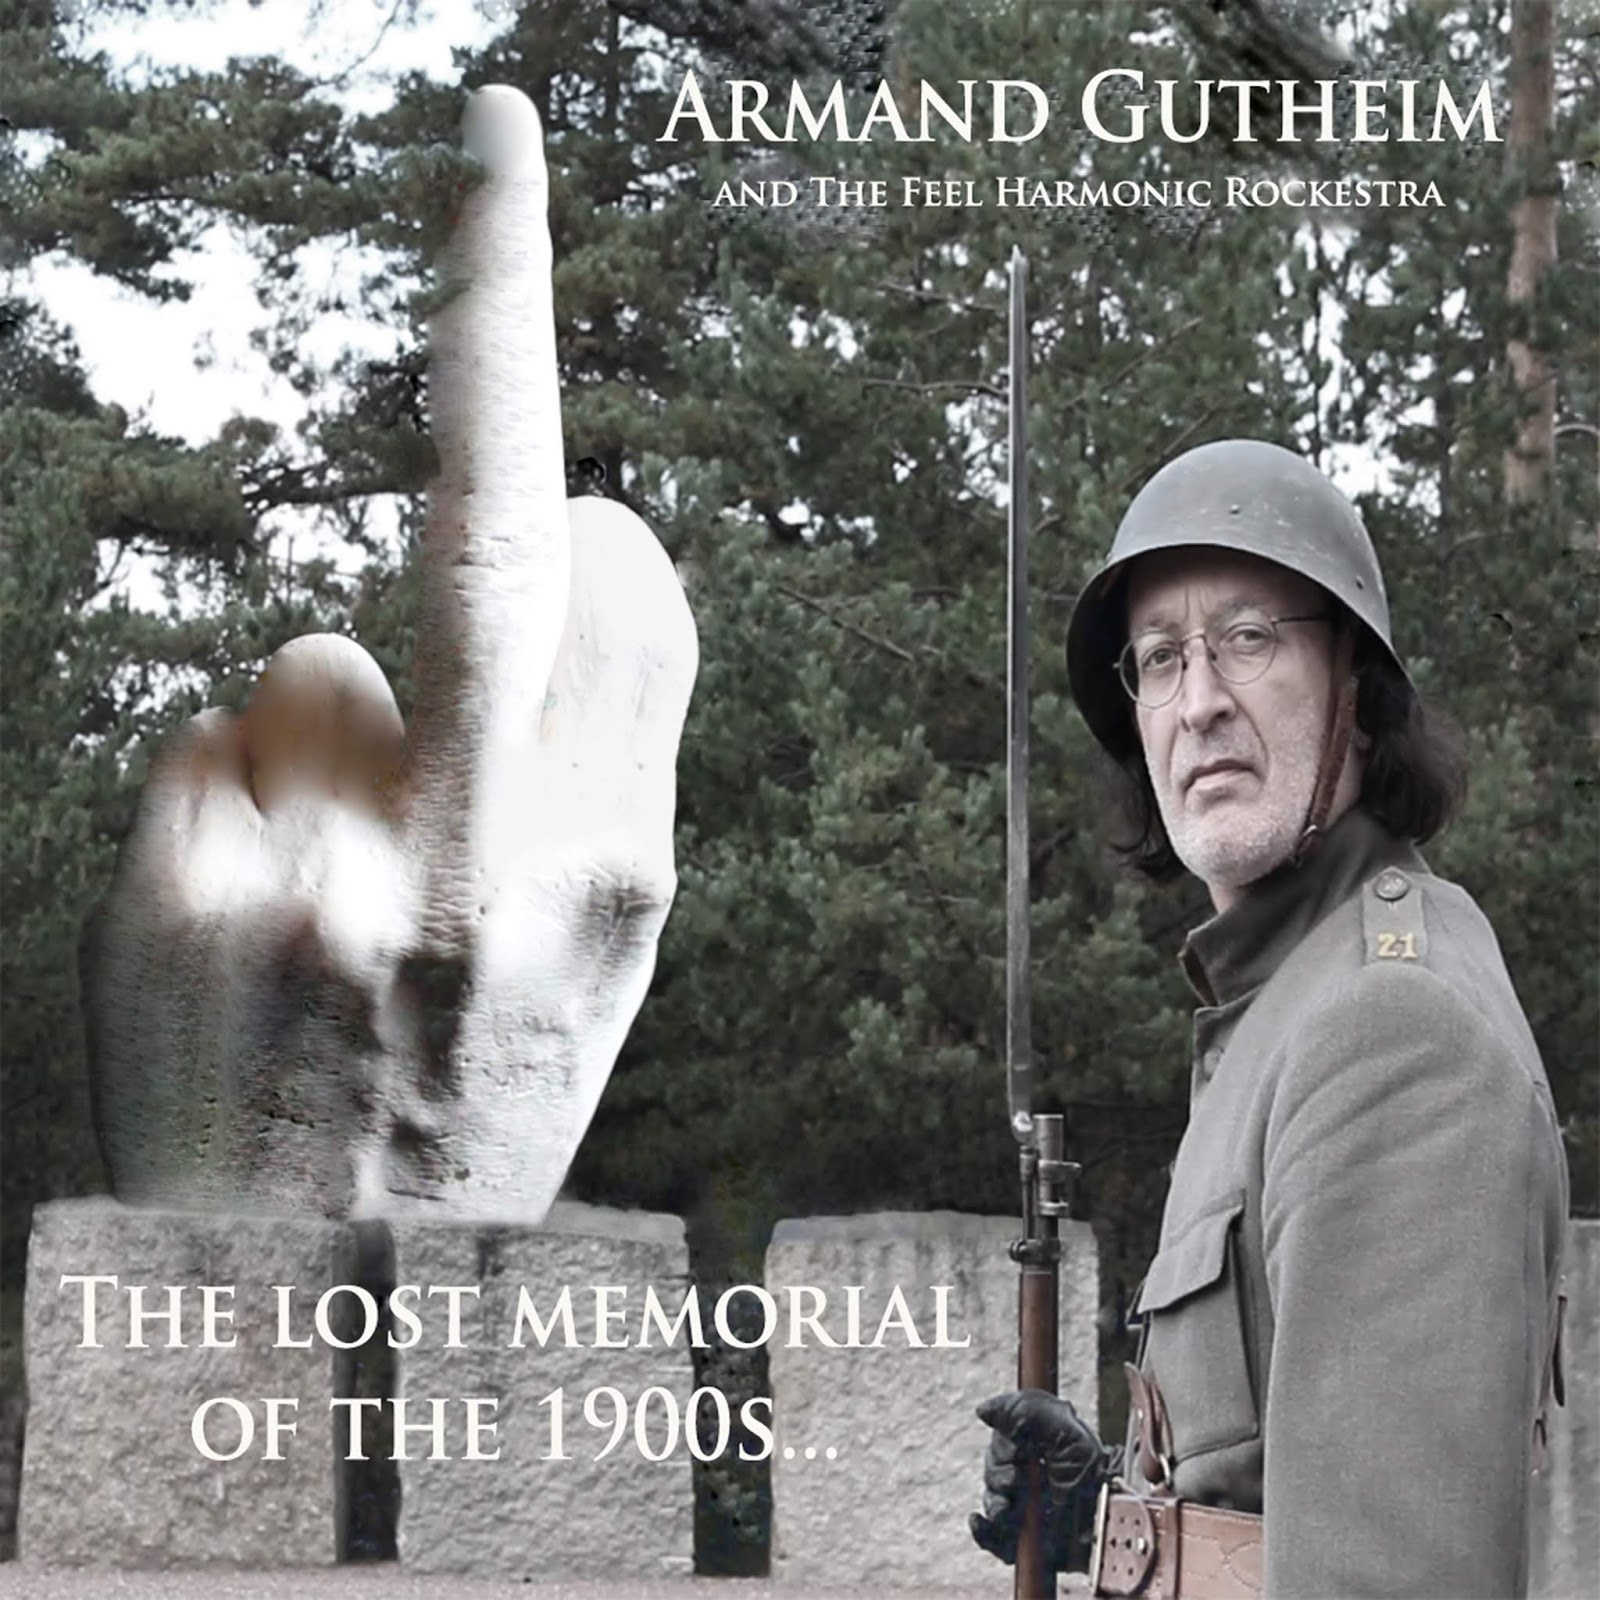 Armand Gutheim: Music releases